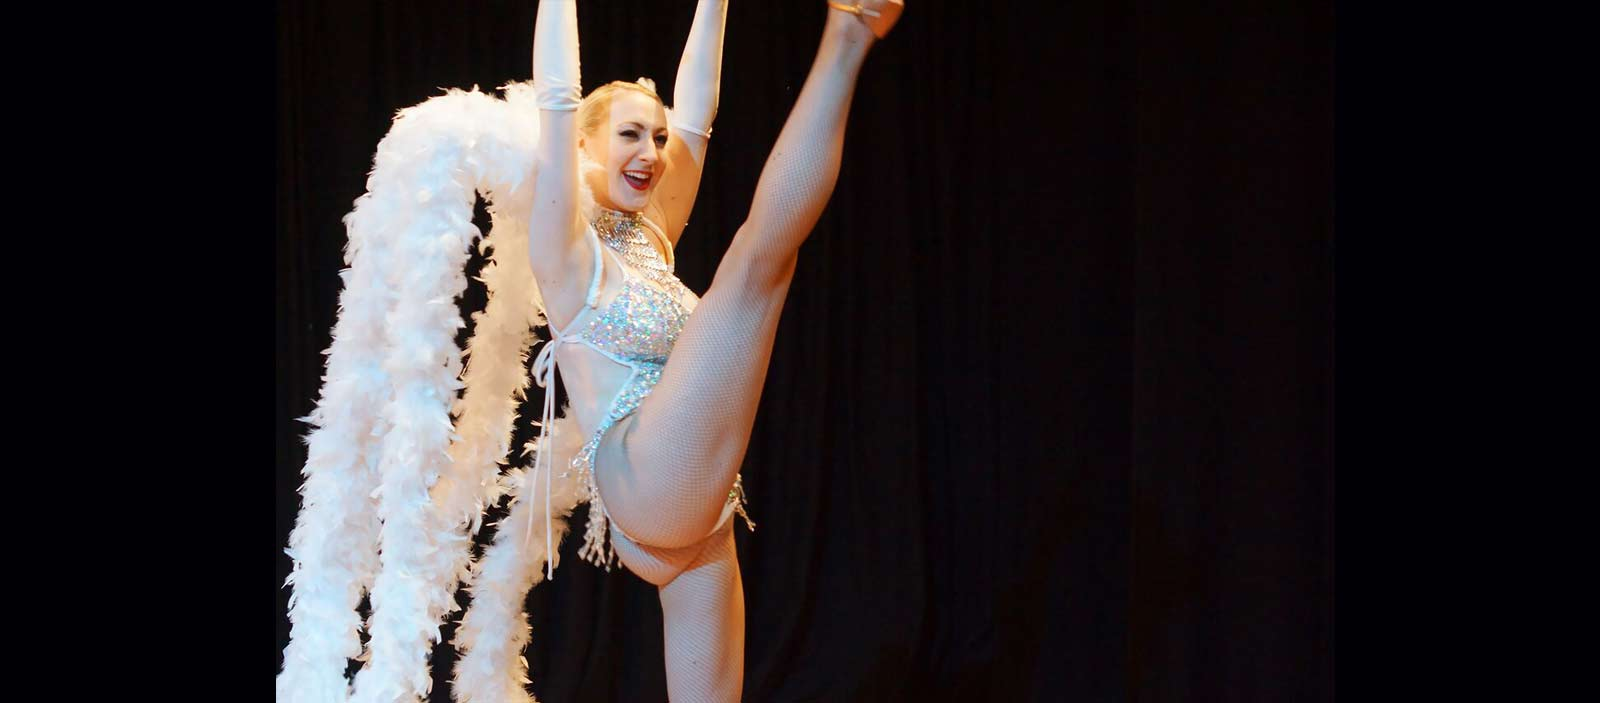 Las Vegas showgirl kicking leg high in silver costume